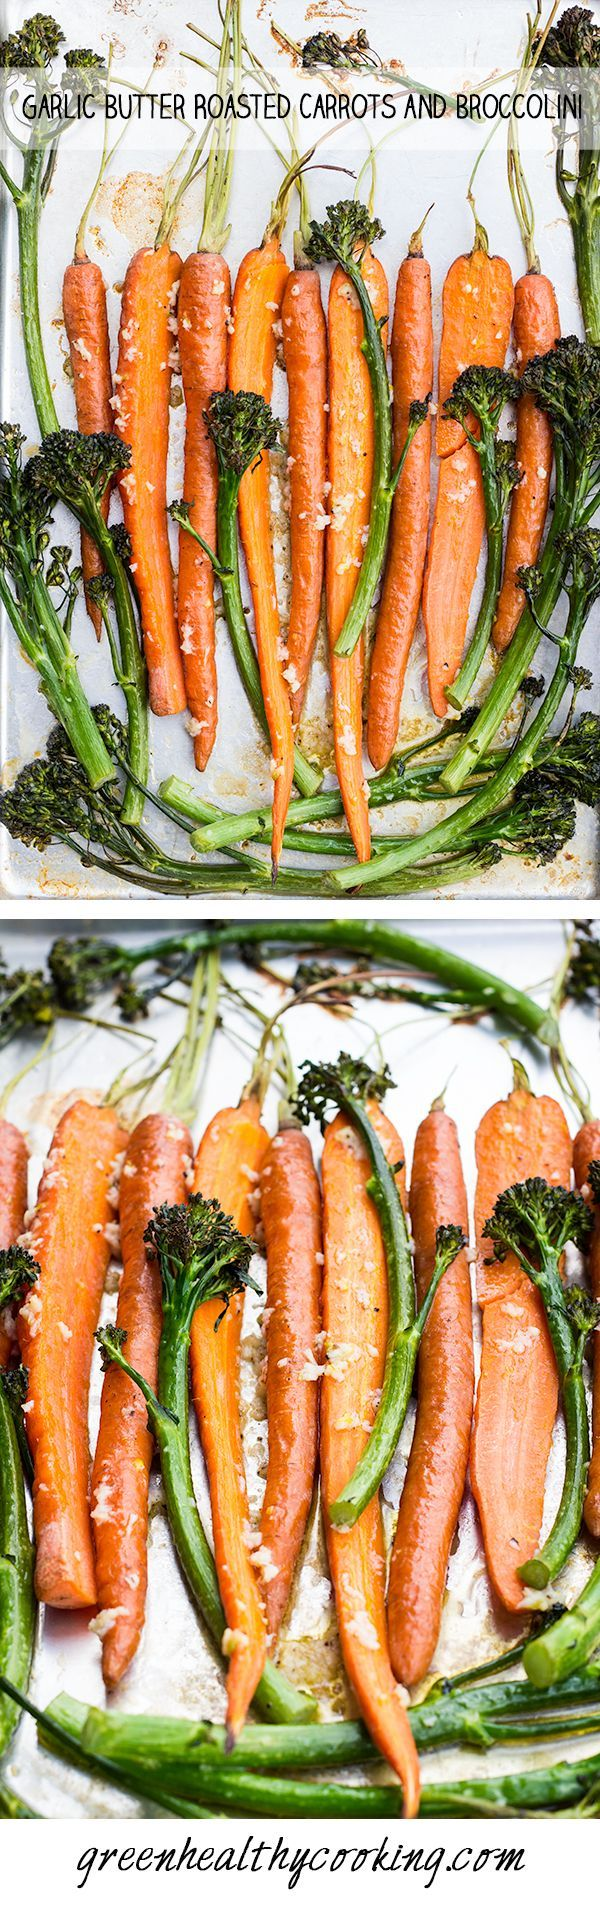 Butter Garlic Roasted Carrots and Broccolini - A recipe for a quick and easy to prepare healthy side dish that is both gorgeous looking and full of flavor!